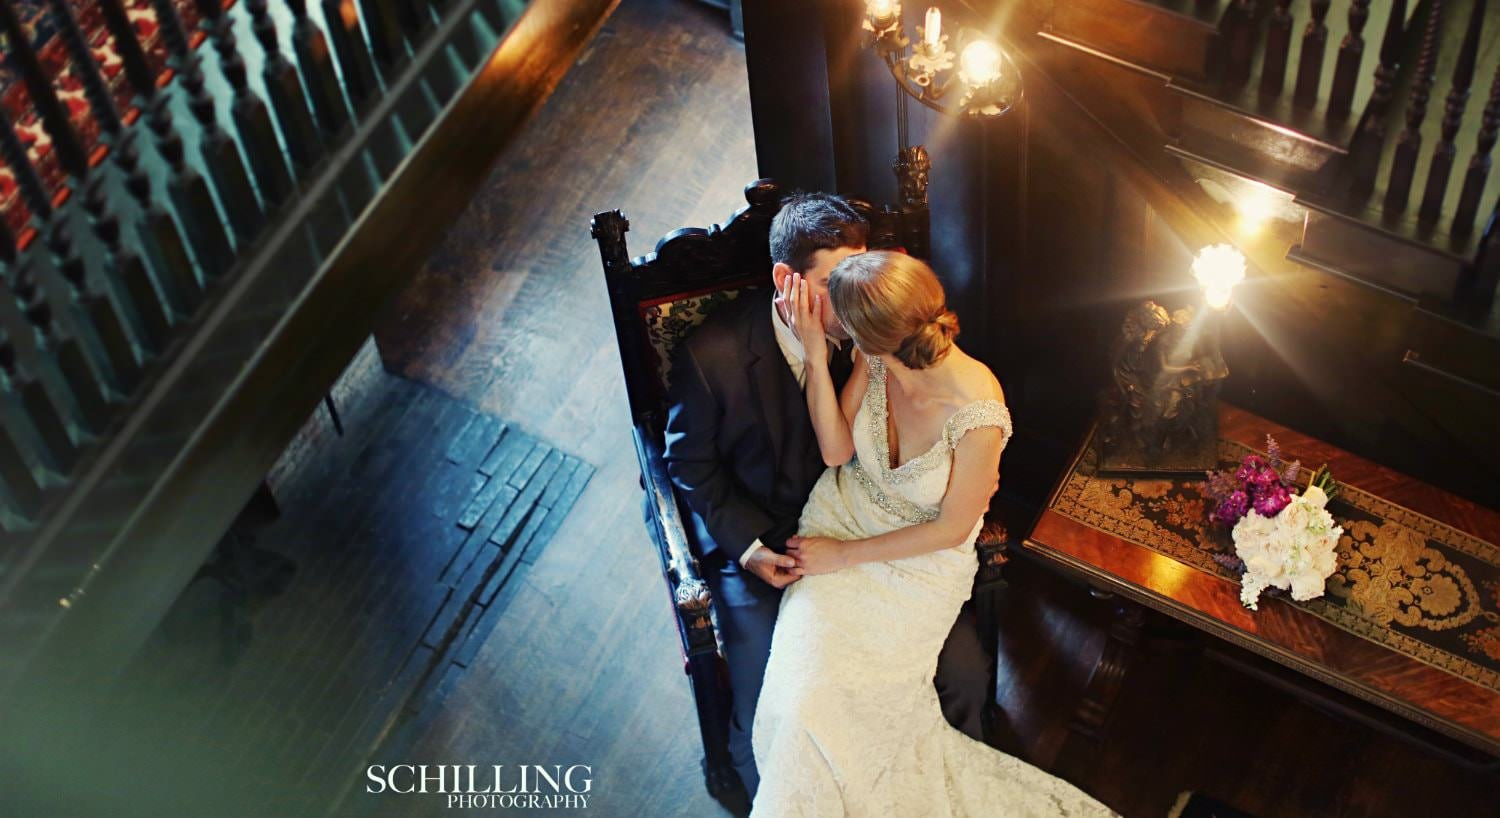 Bride sitting on grooms lap in tall wood chair in dimly lit room surrounded by dark trim, floors and stairs